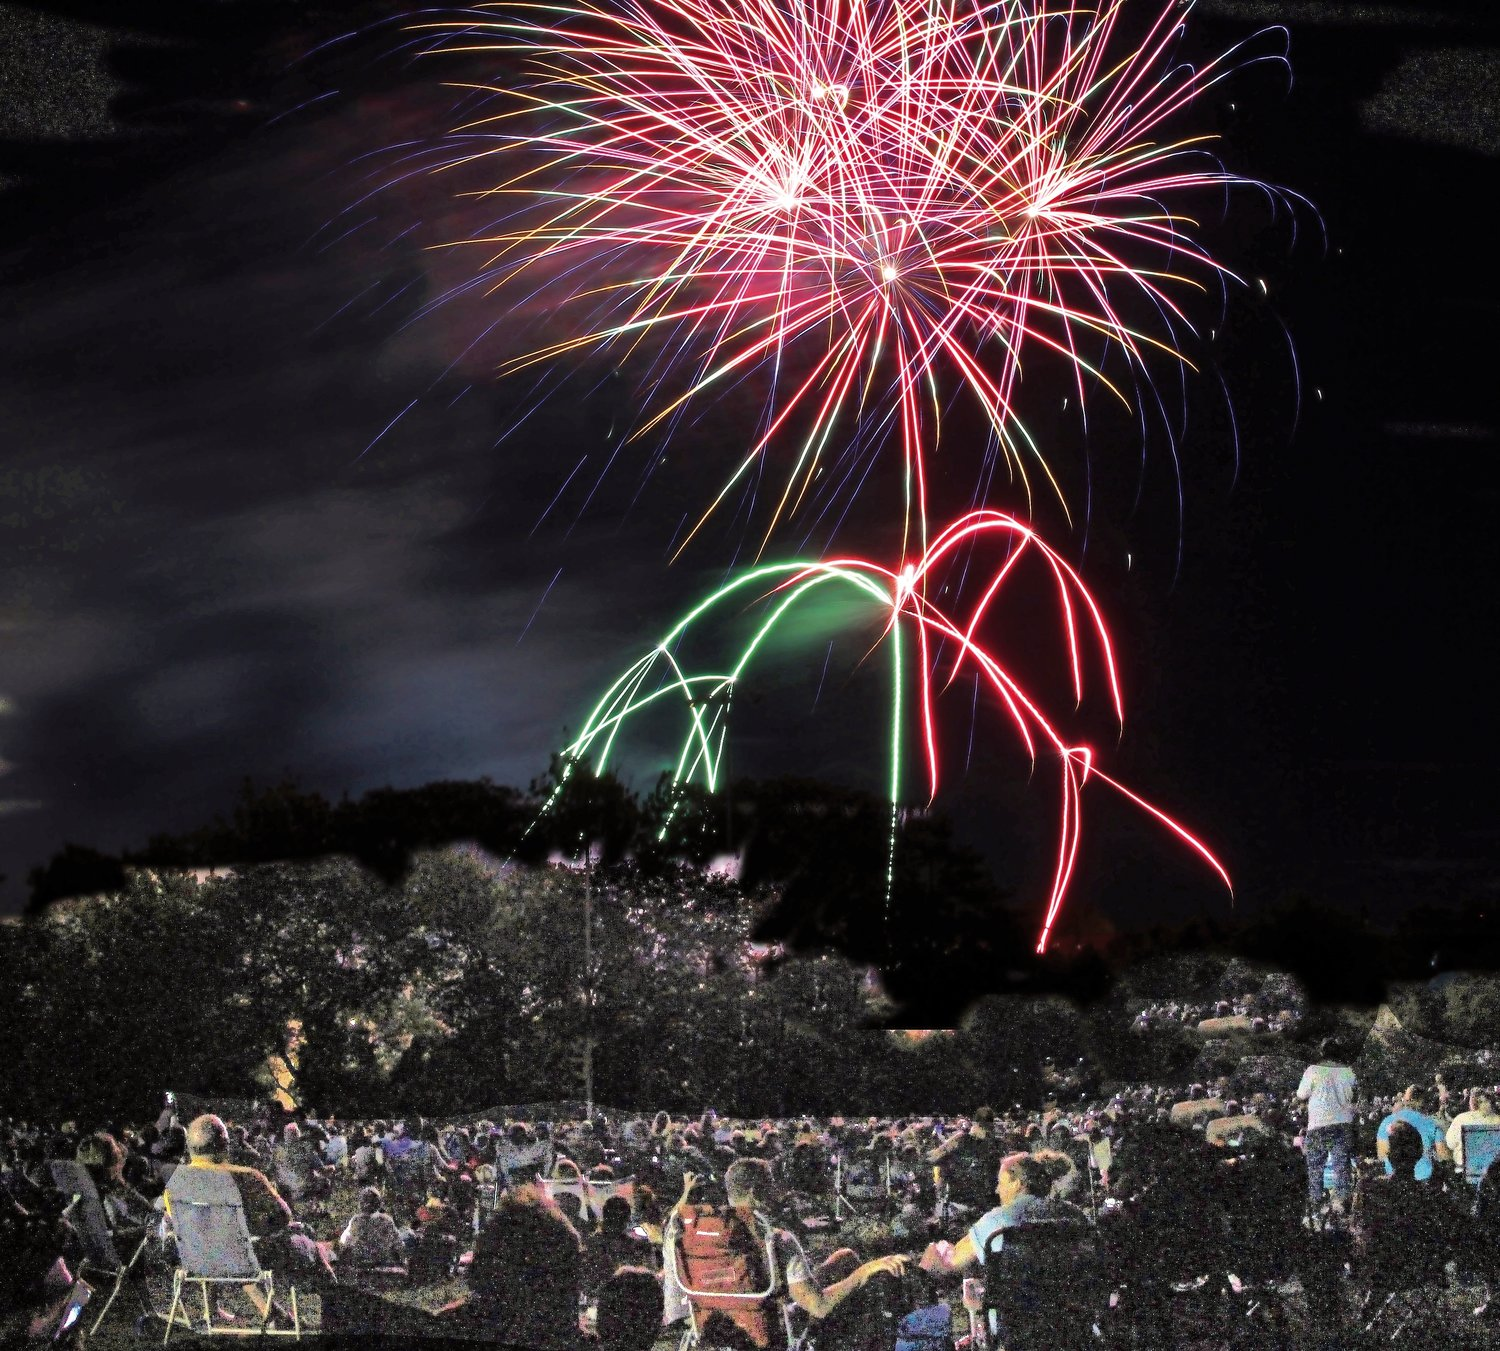 Mill River Park was full of community members watching the Rockville Center Fireworks